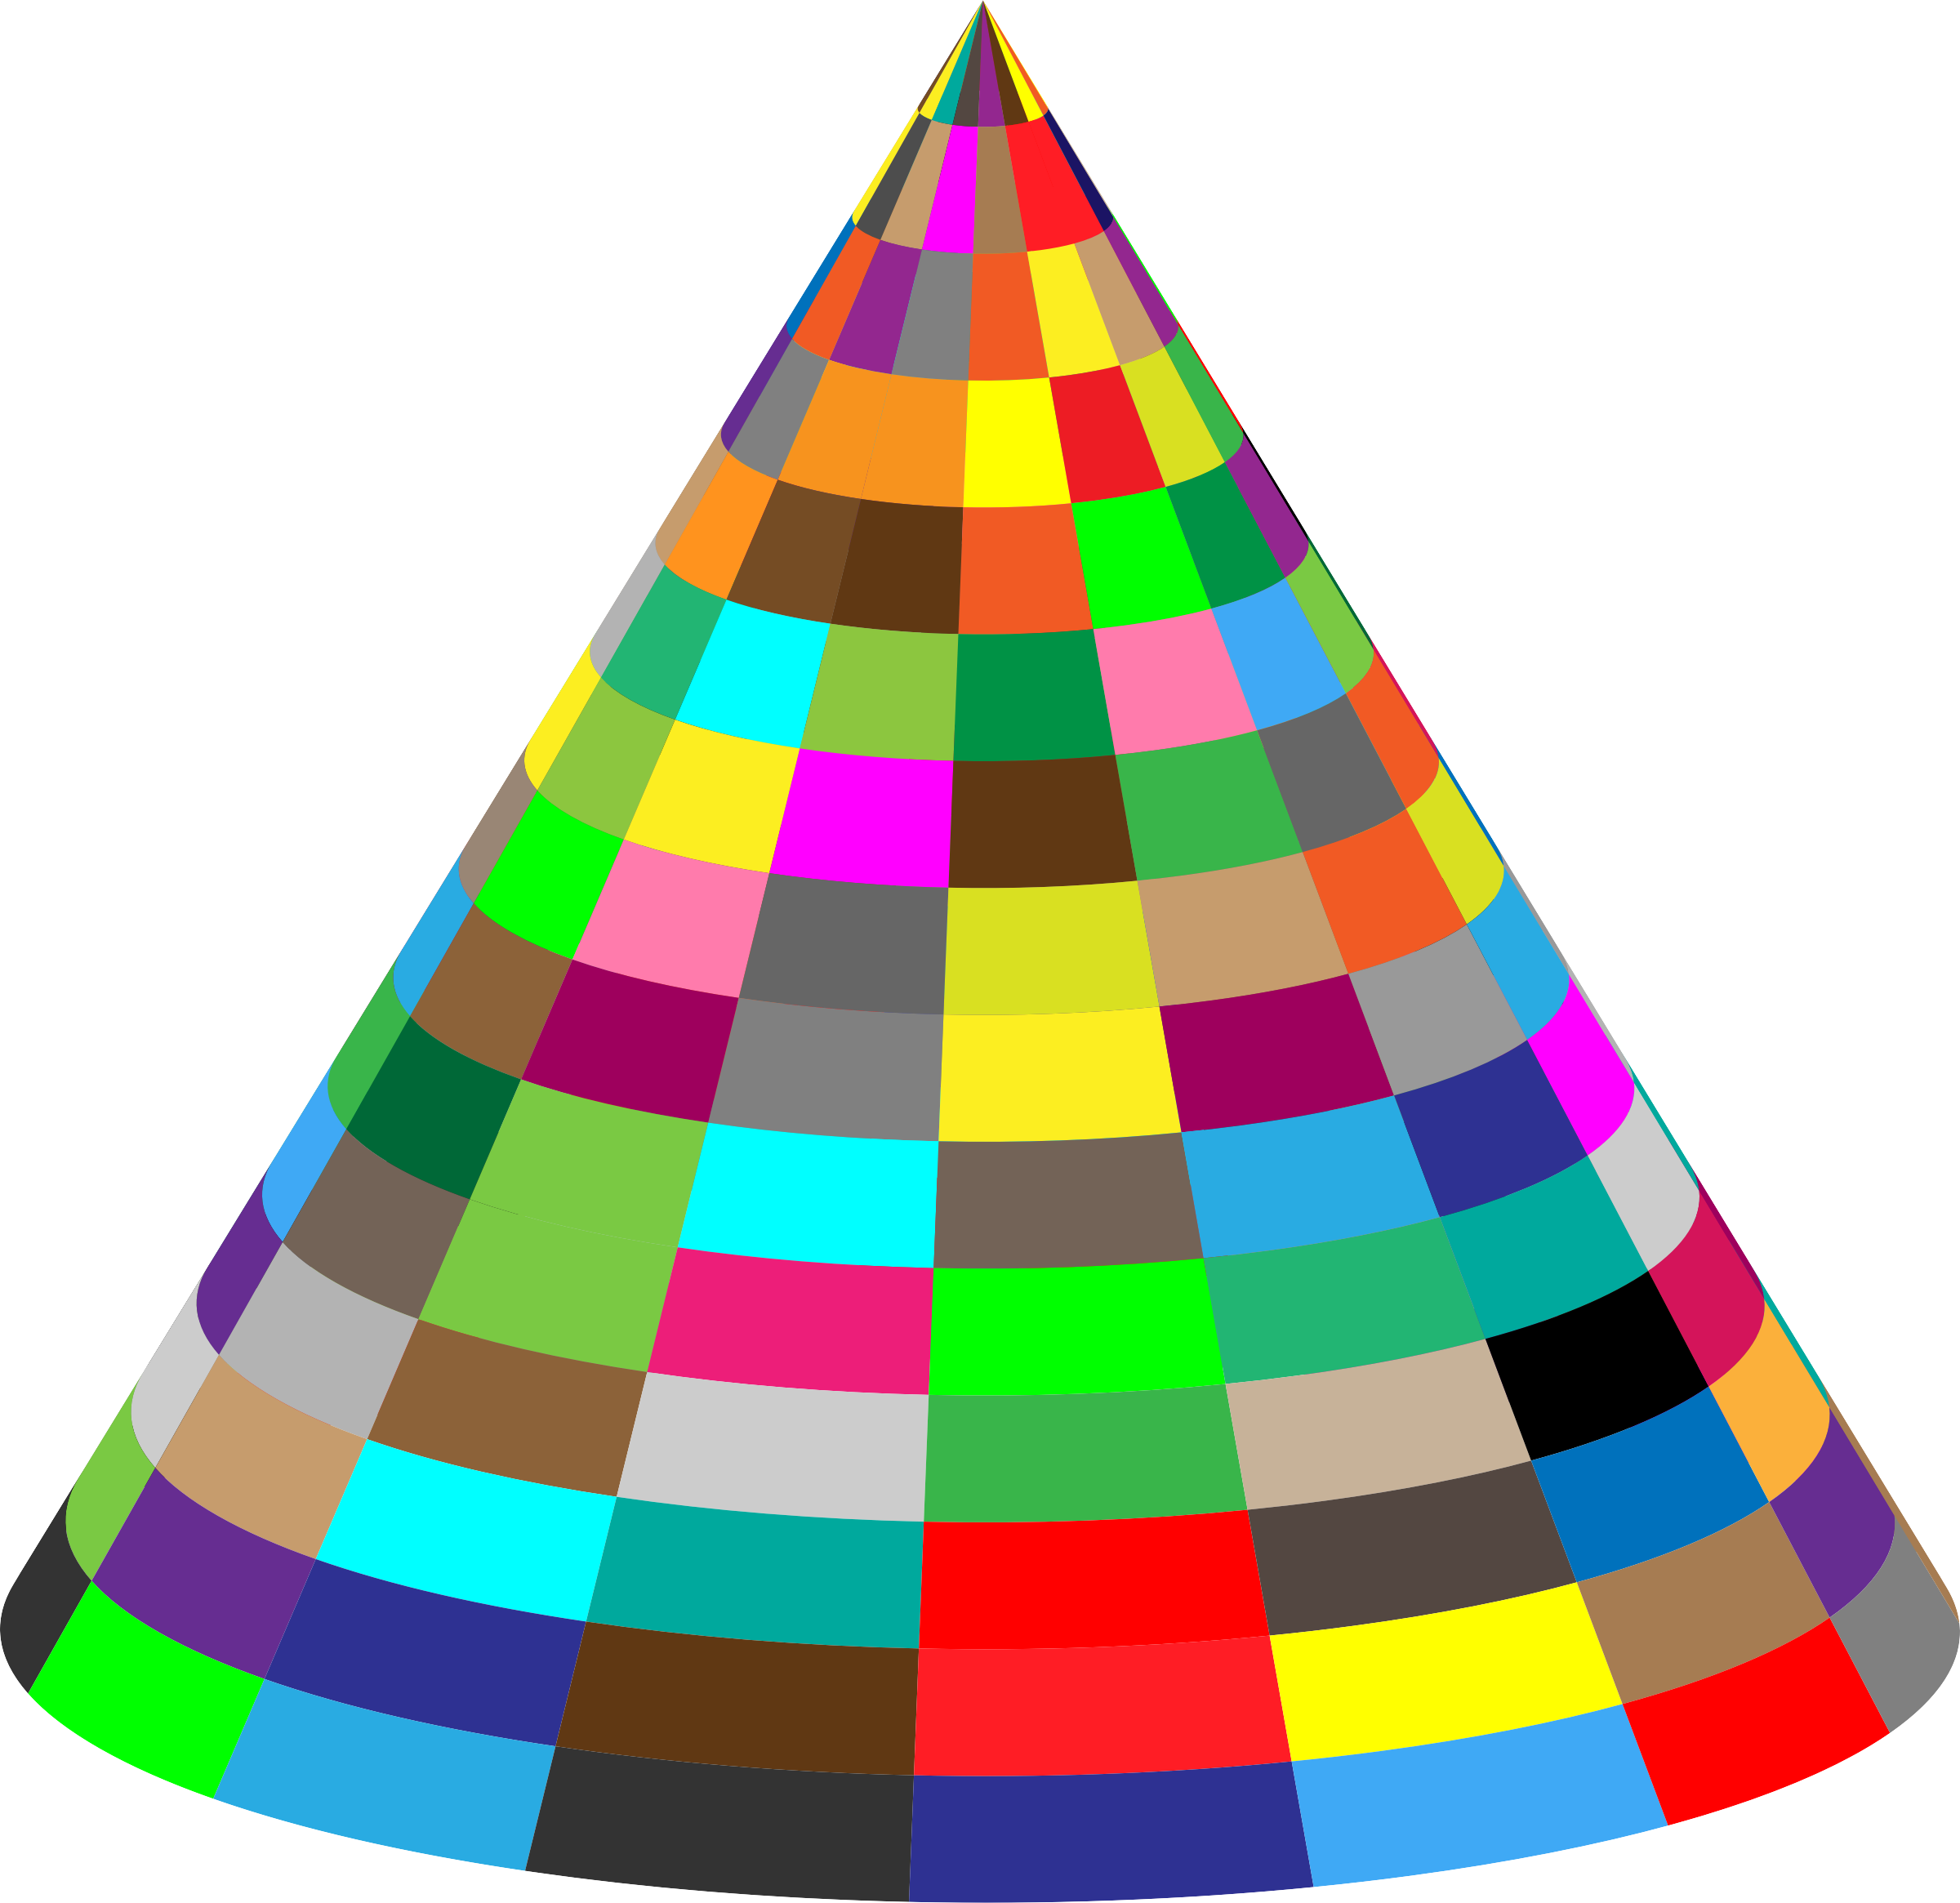 3D Multicolored Cone by GDJ